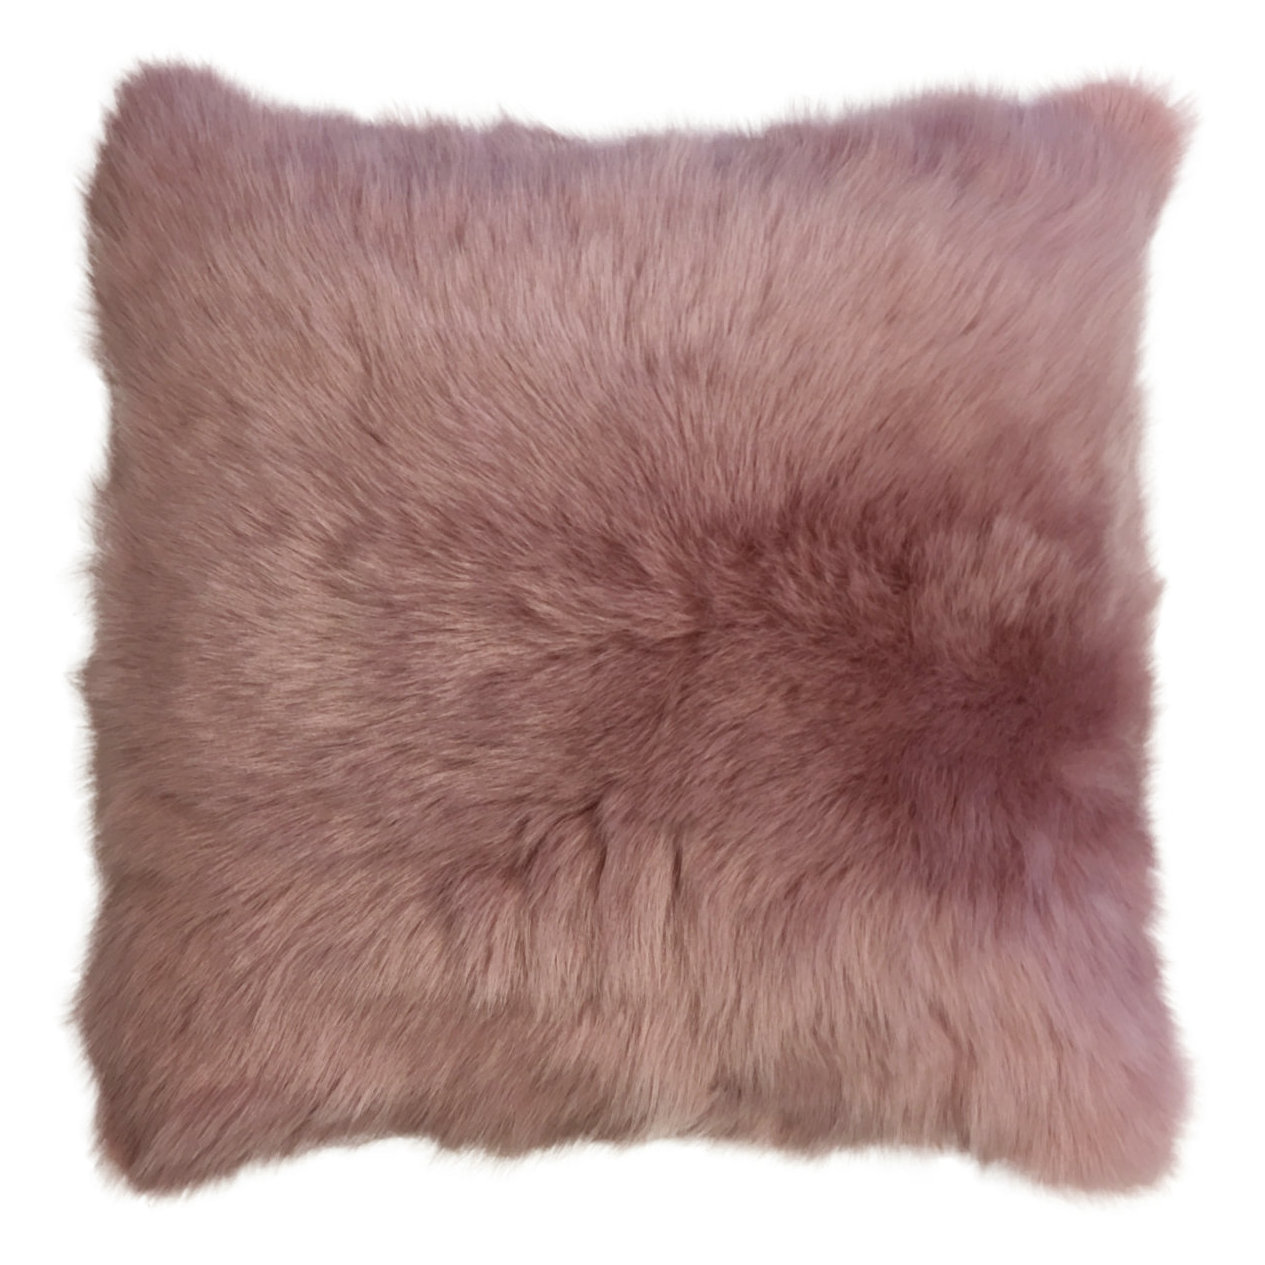 Shearling Pillow-D.Pink-50x50cm-SPDPINS3145050 - ANVOGG FEEL SHEARLING | ANVOGG